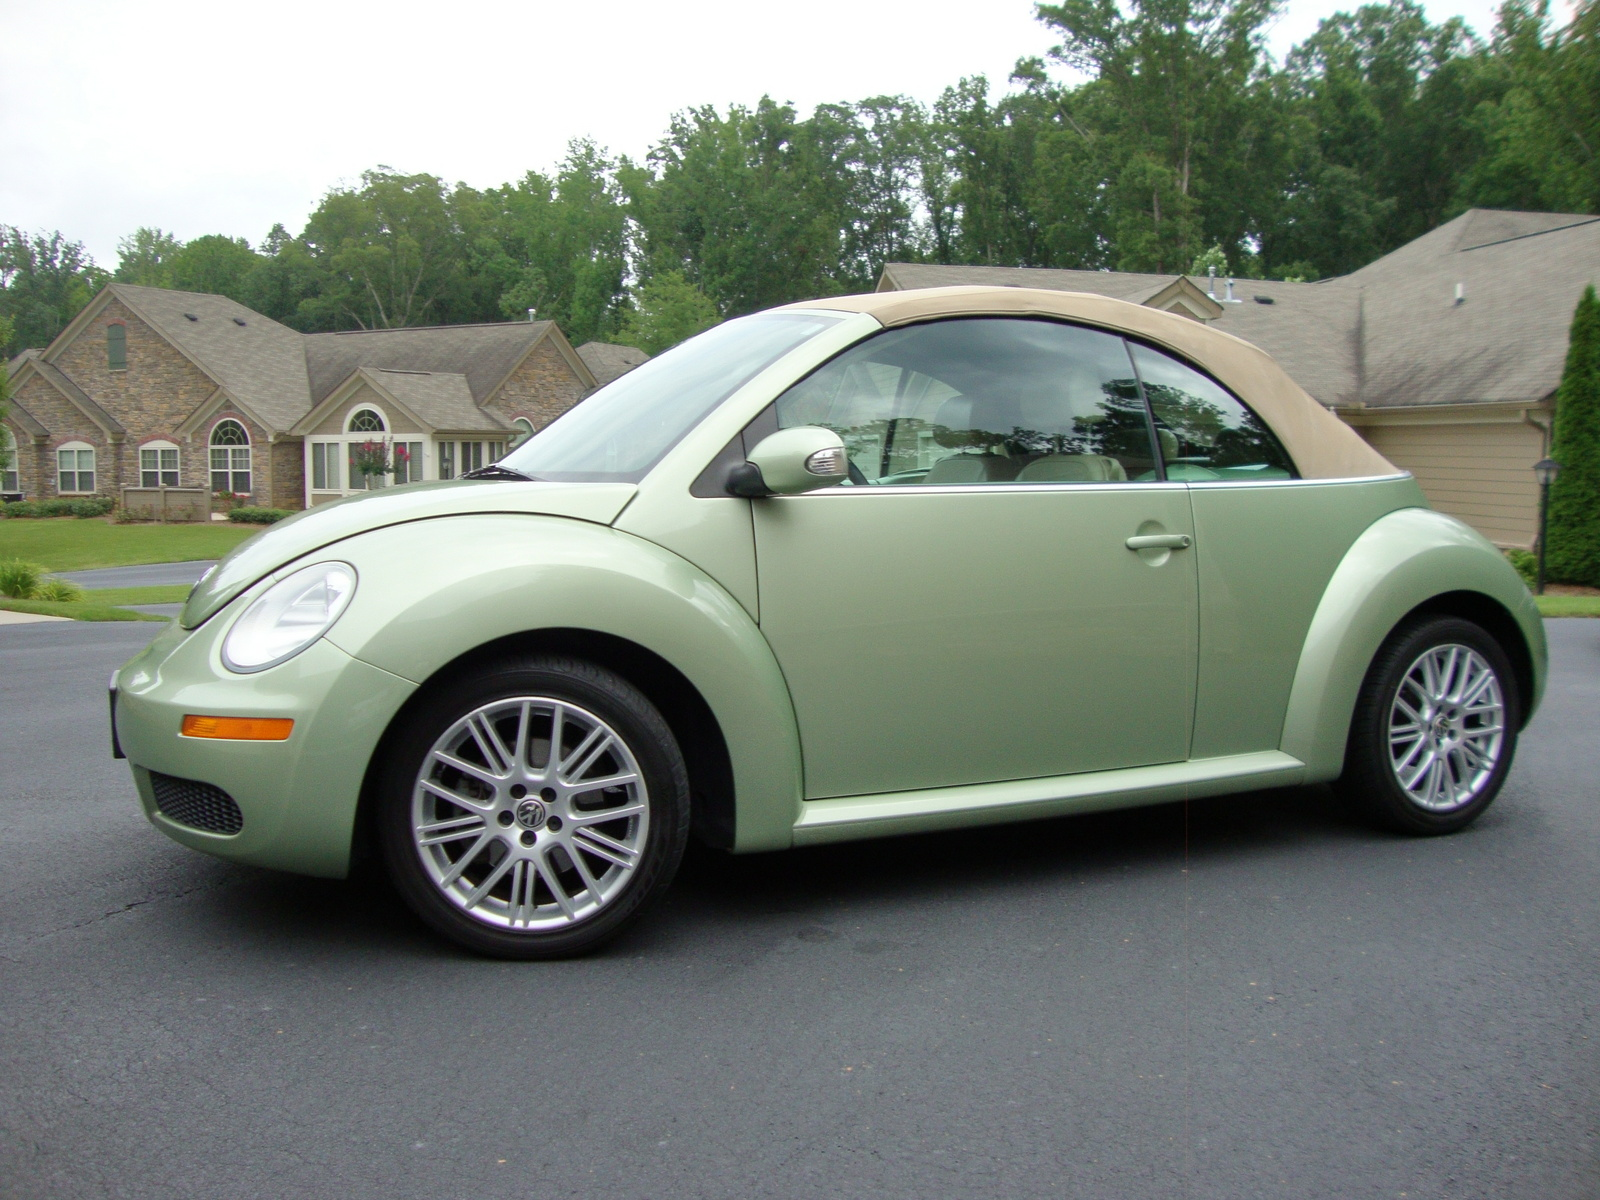 Vw Beetle 2001 Turbo Diagram Ask Answer Wiring Volkswagen Interior New Engine Get Free Image About